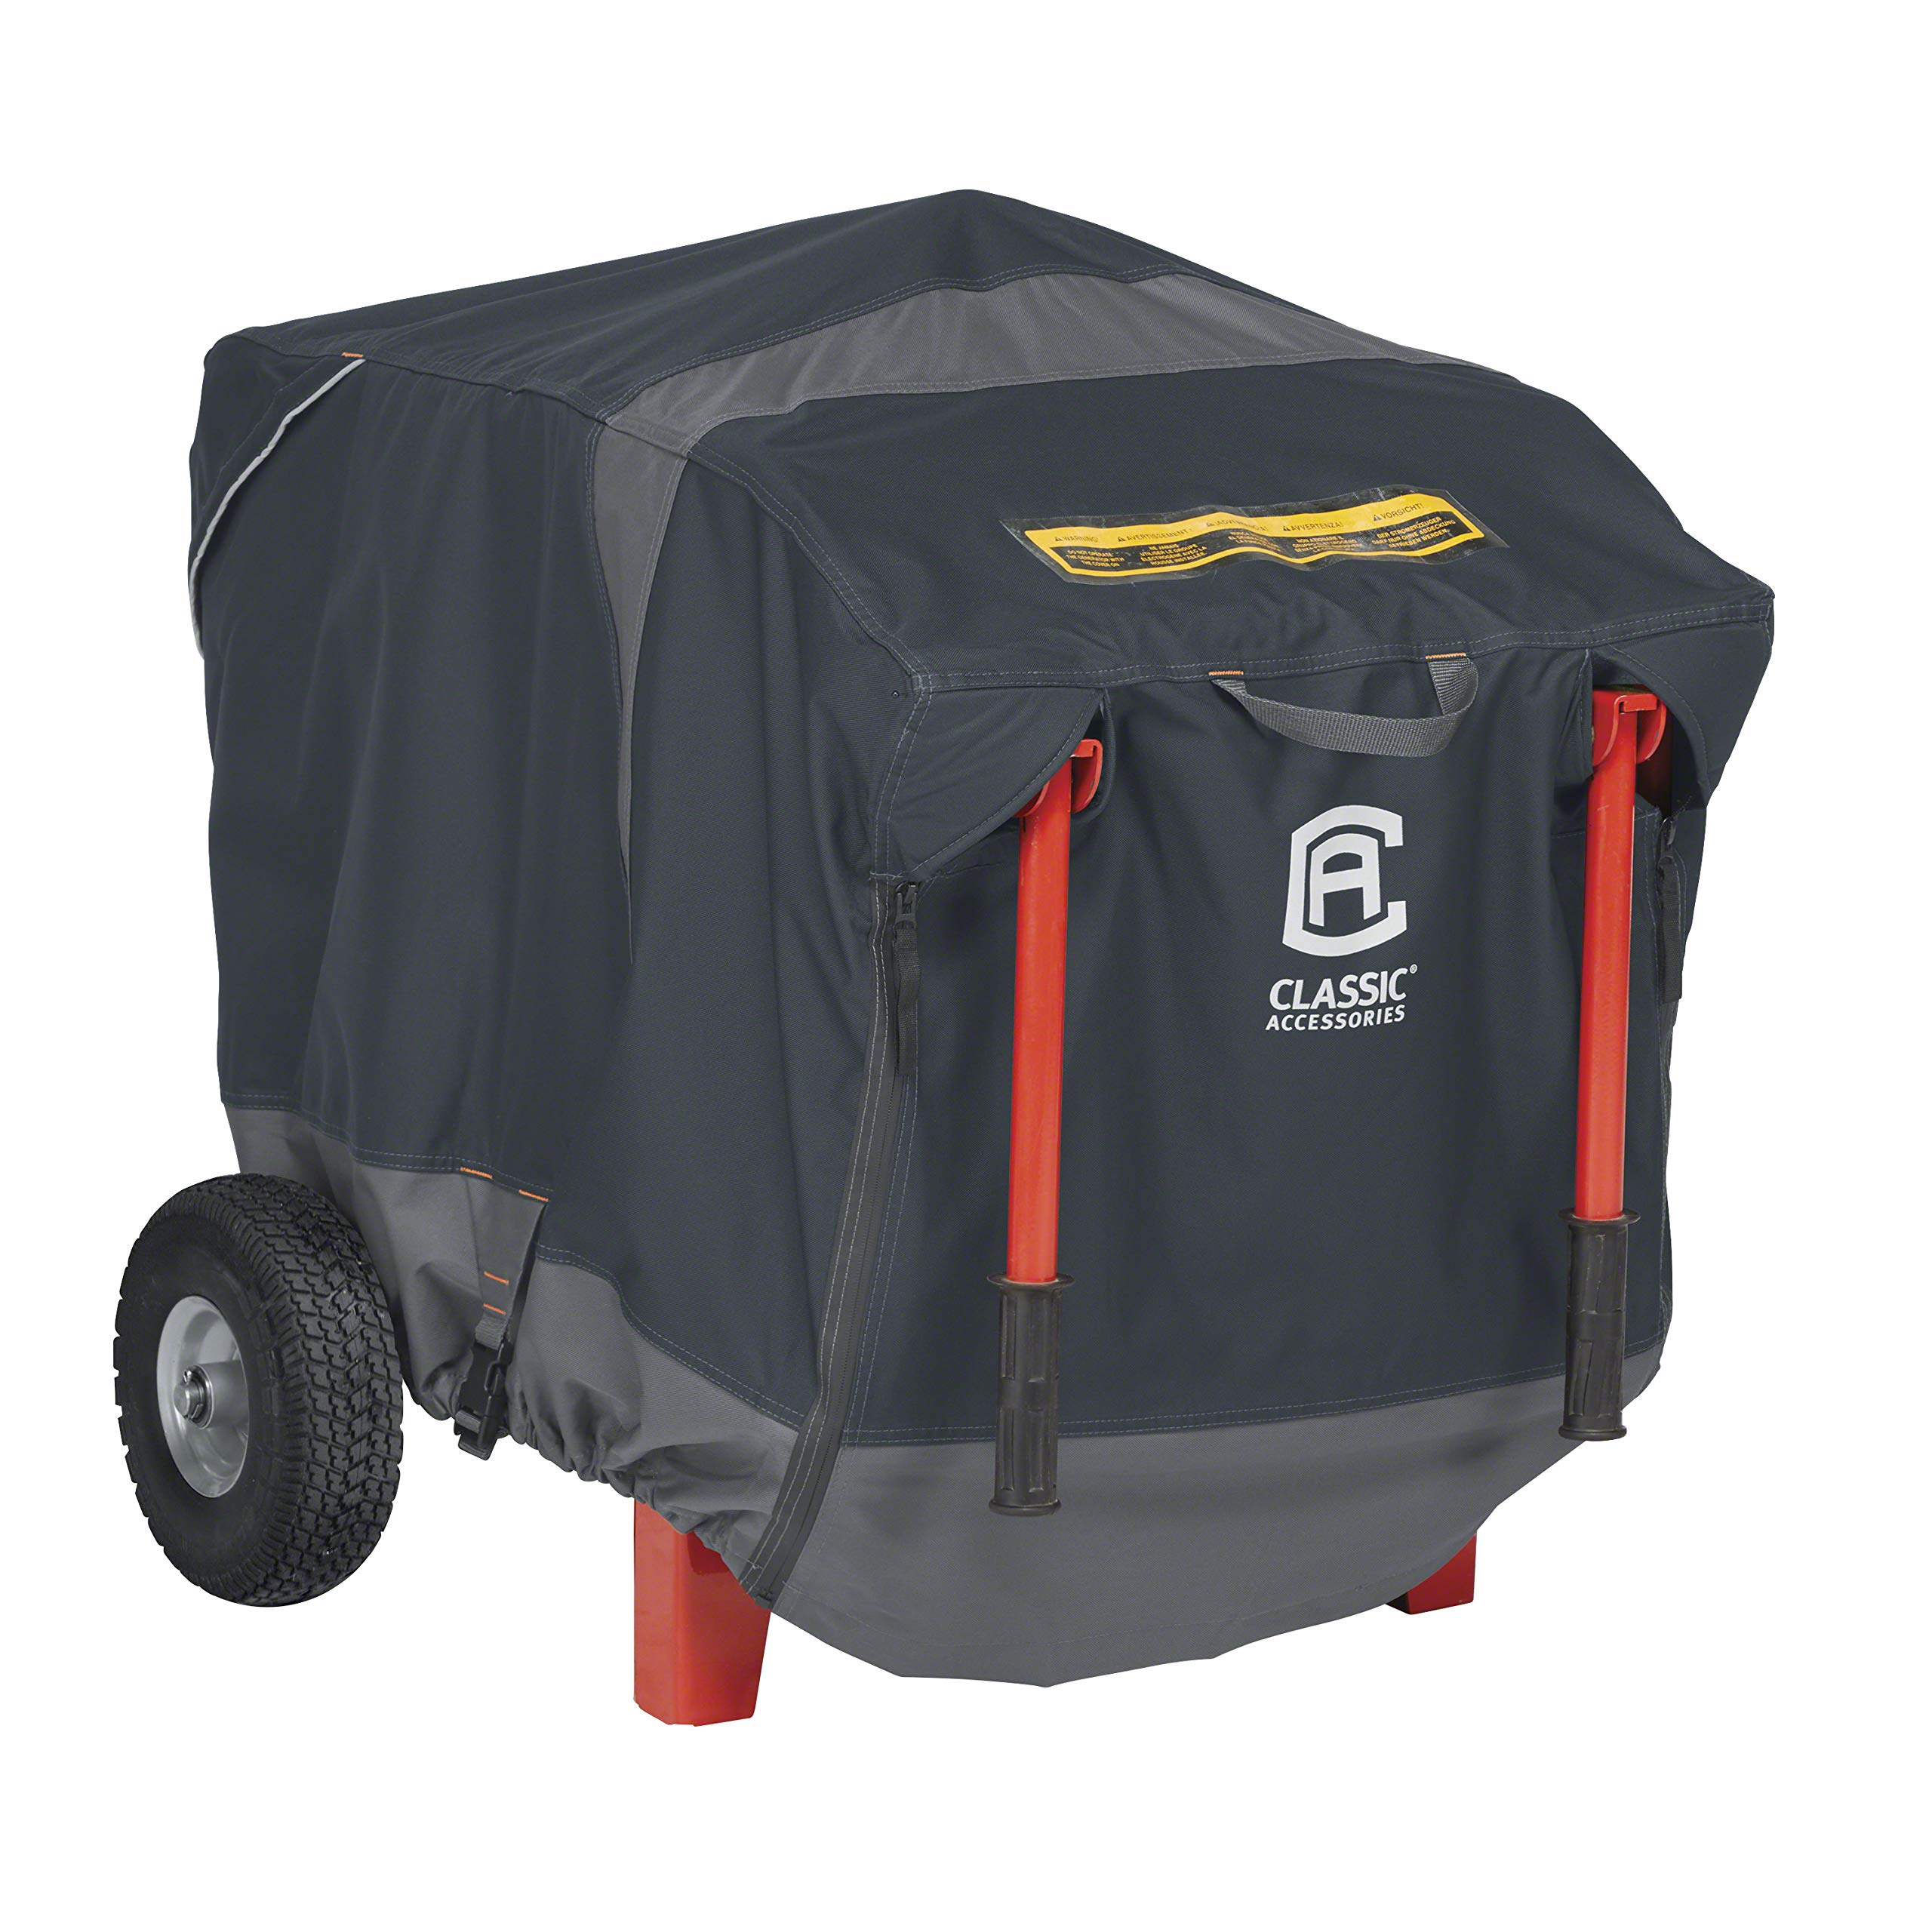 Classic Accessories StormPro RainProof Heavy Duty Generator Cover, Large by Classic Accessories